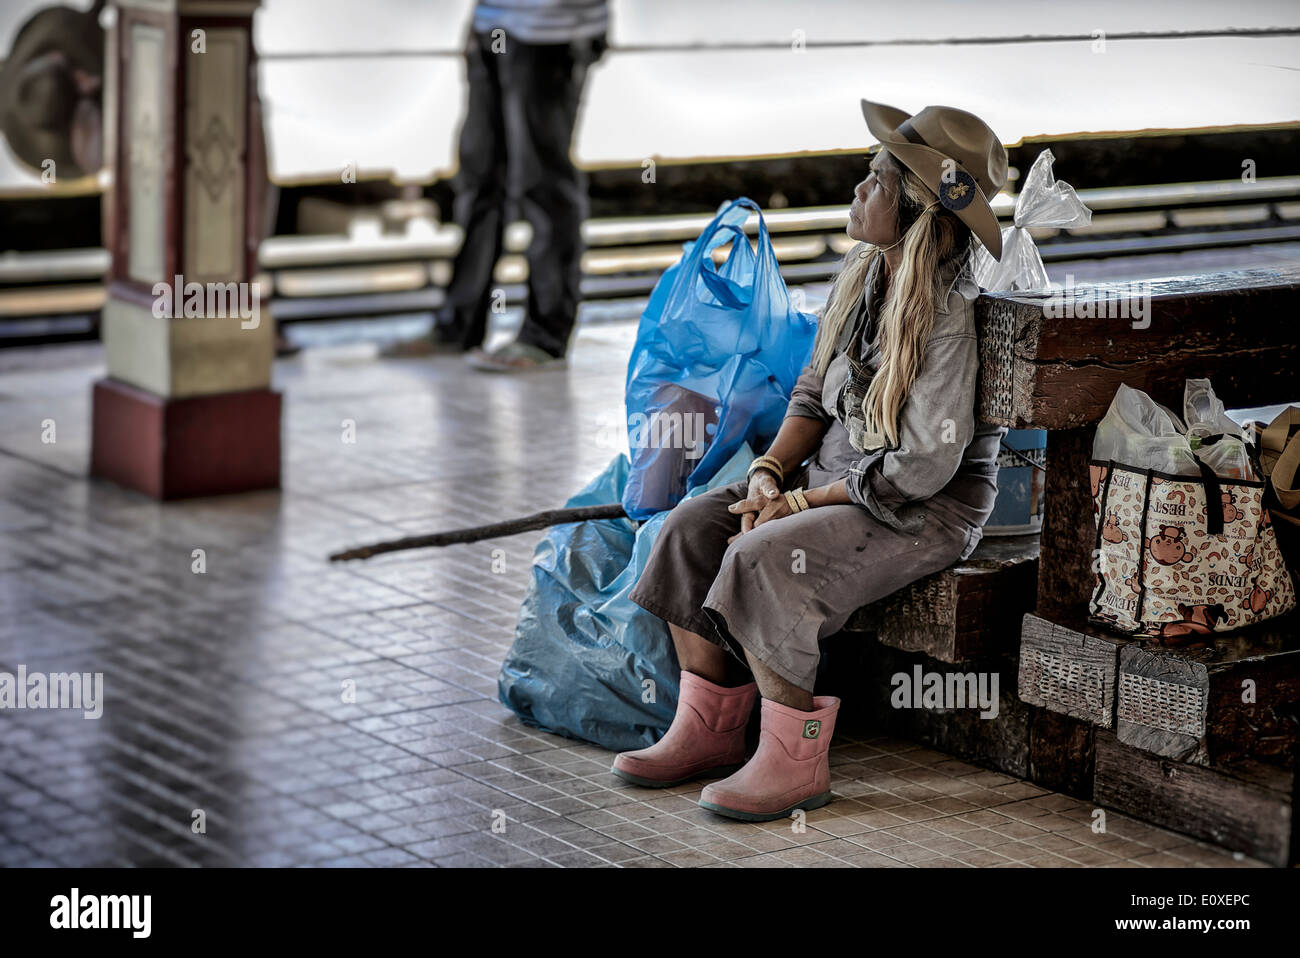 Elderly Thai female traveller waiting at a train station. Thailand S. E. Asia - Stock Image